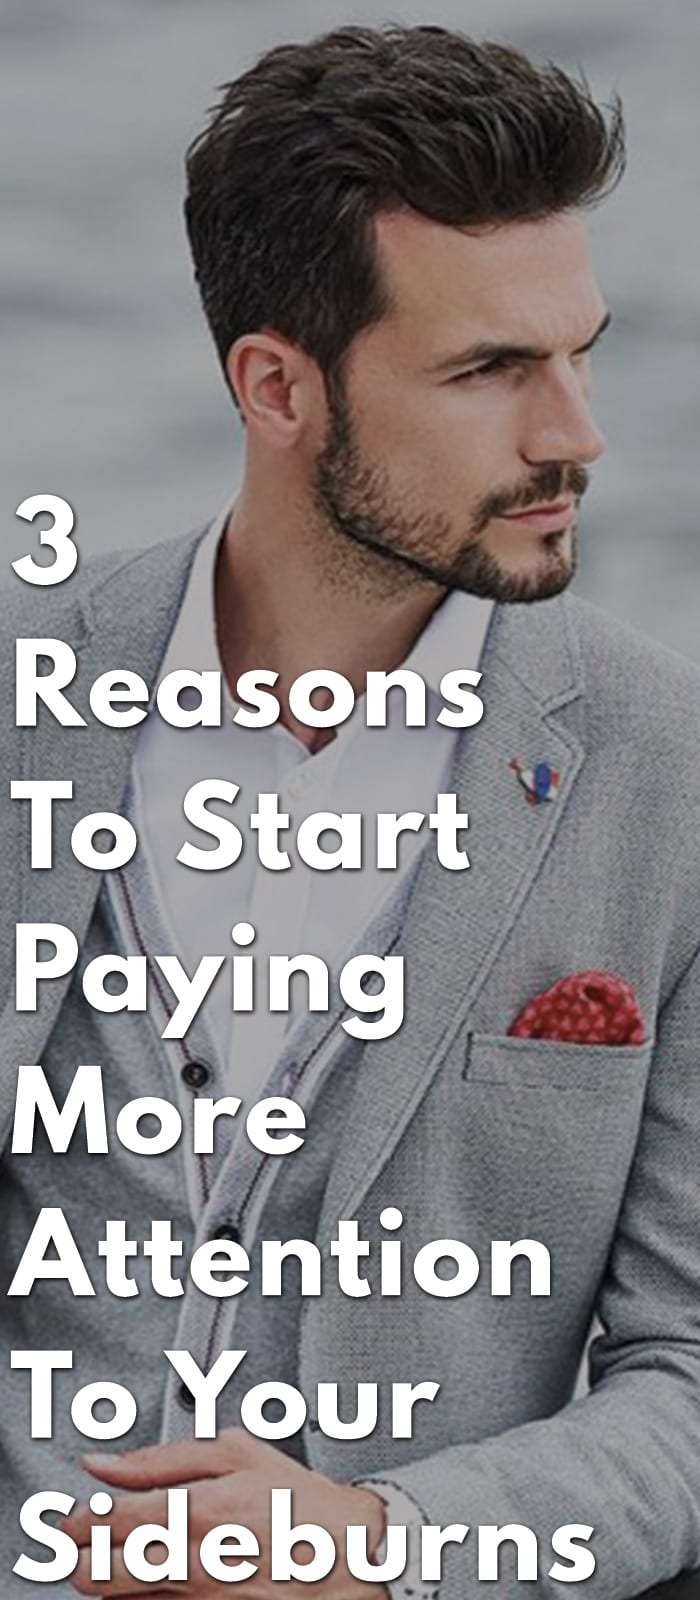 3-Reasons-To-Start-Paying-More-Attention-To-Your-Sideburns.